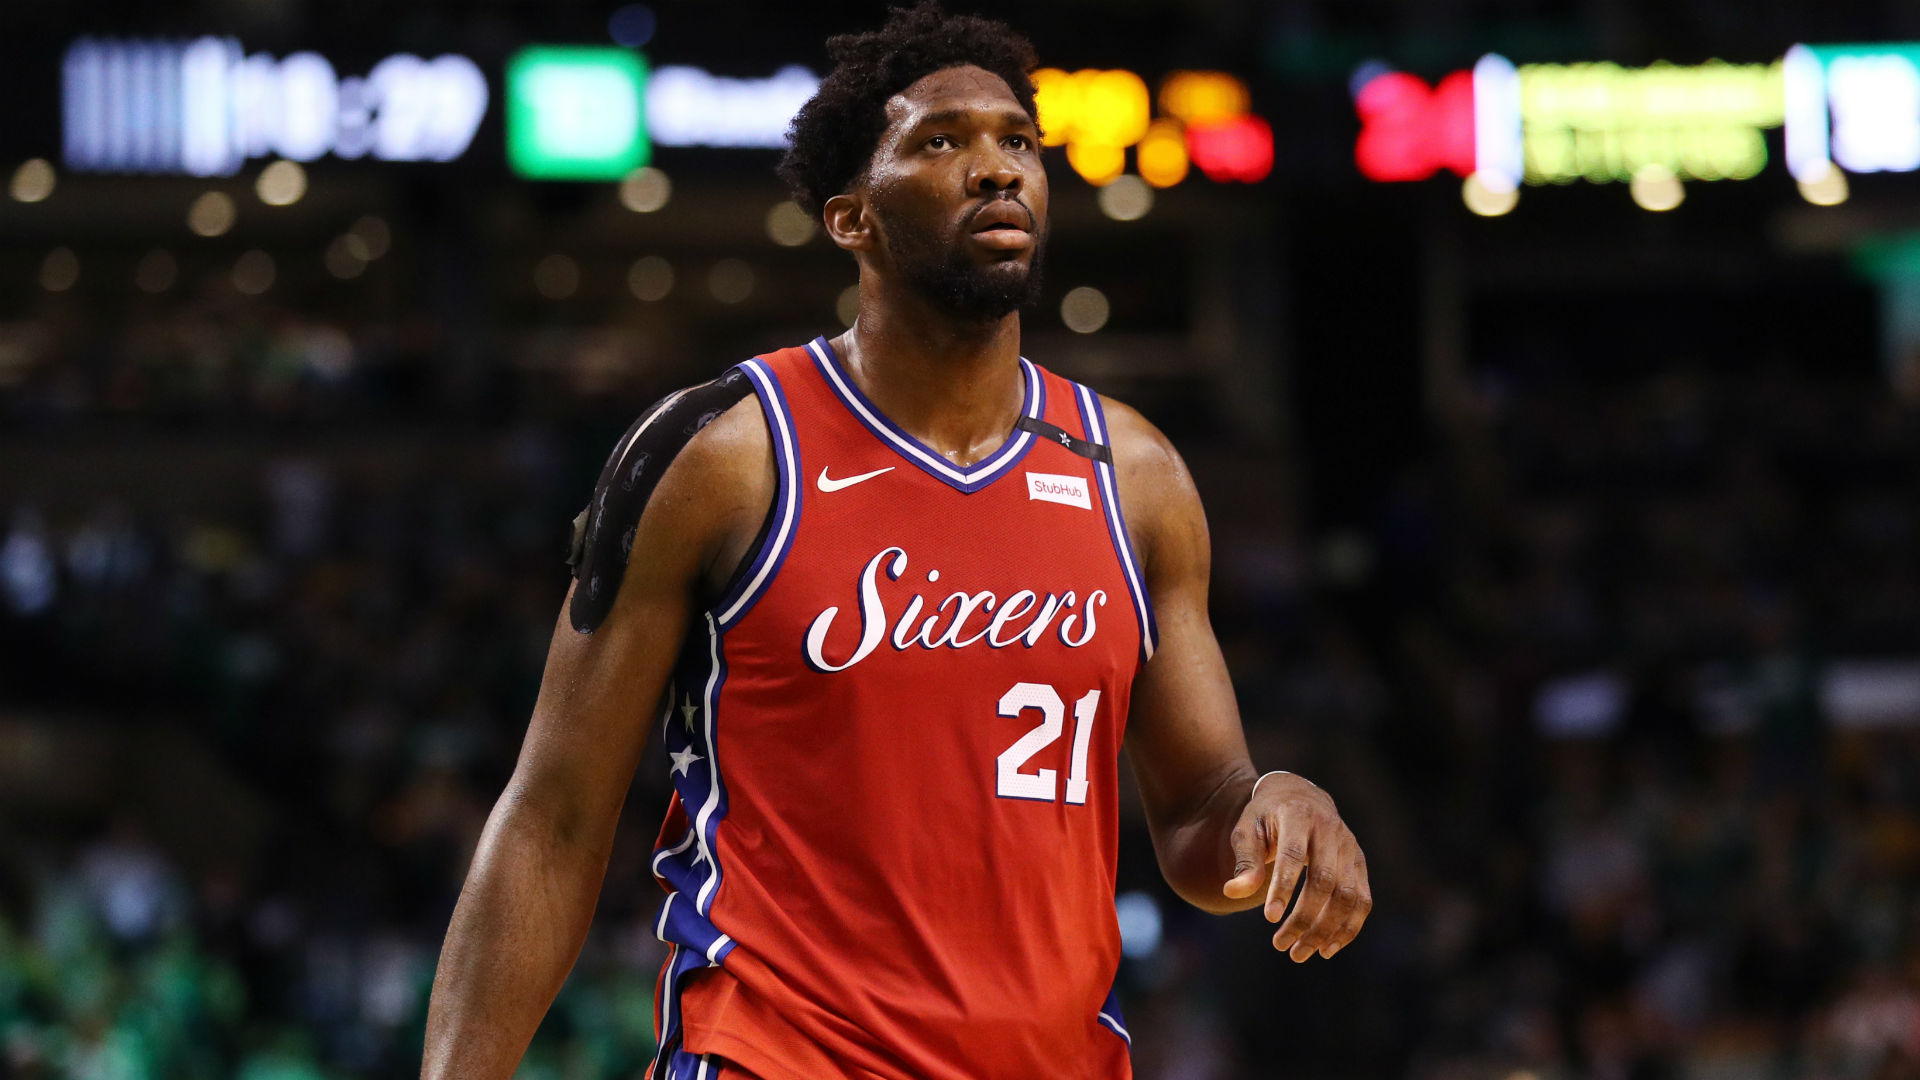 Sixers star Embiid fined $25k